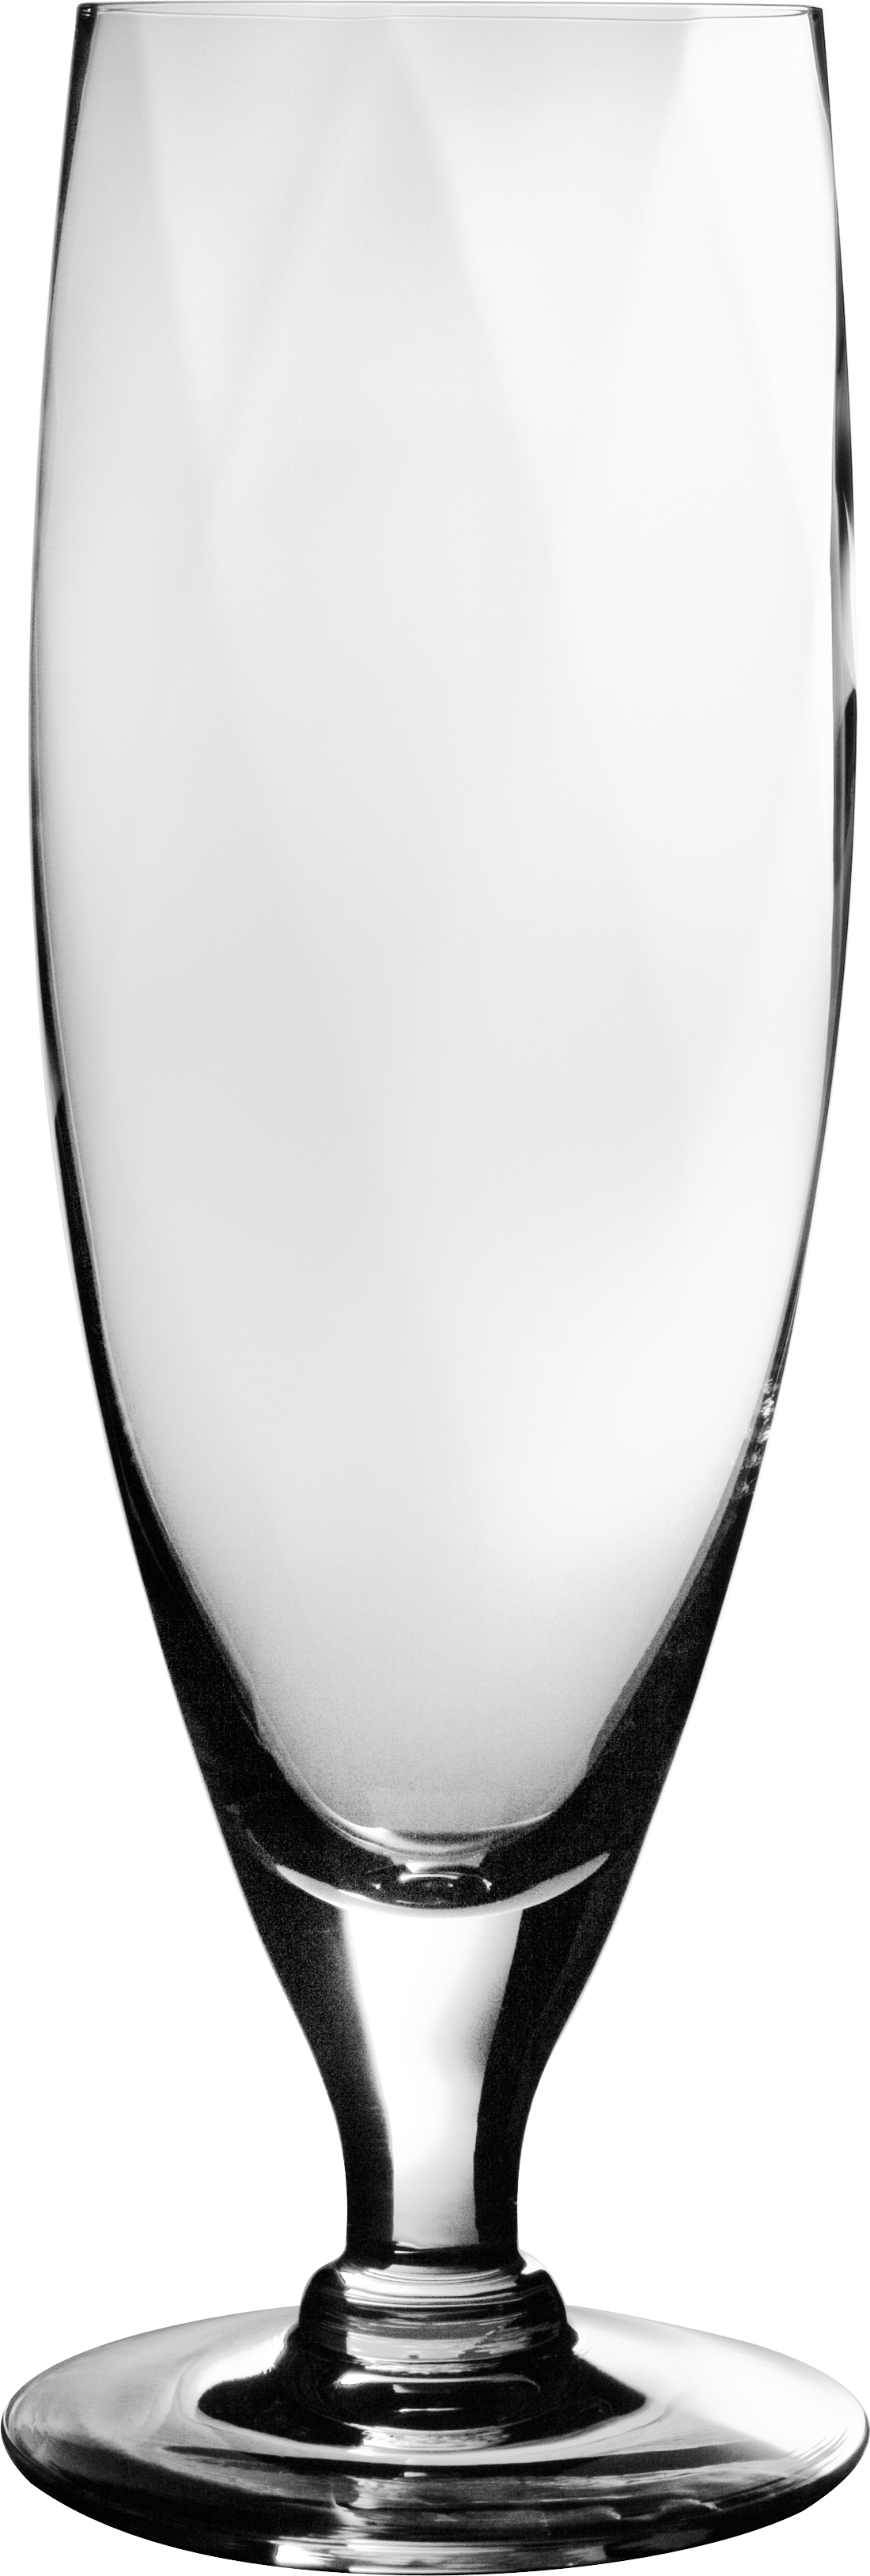 Empty beer glass png. Images free wineglass pictures